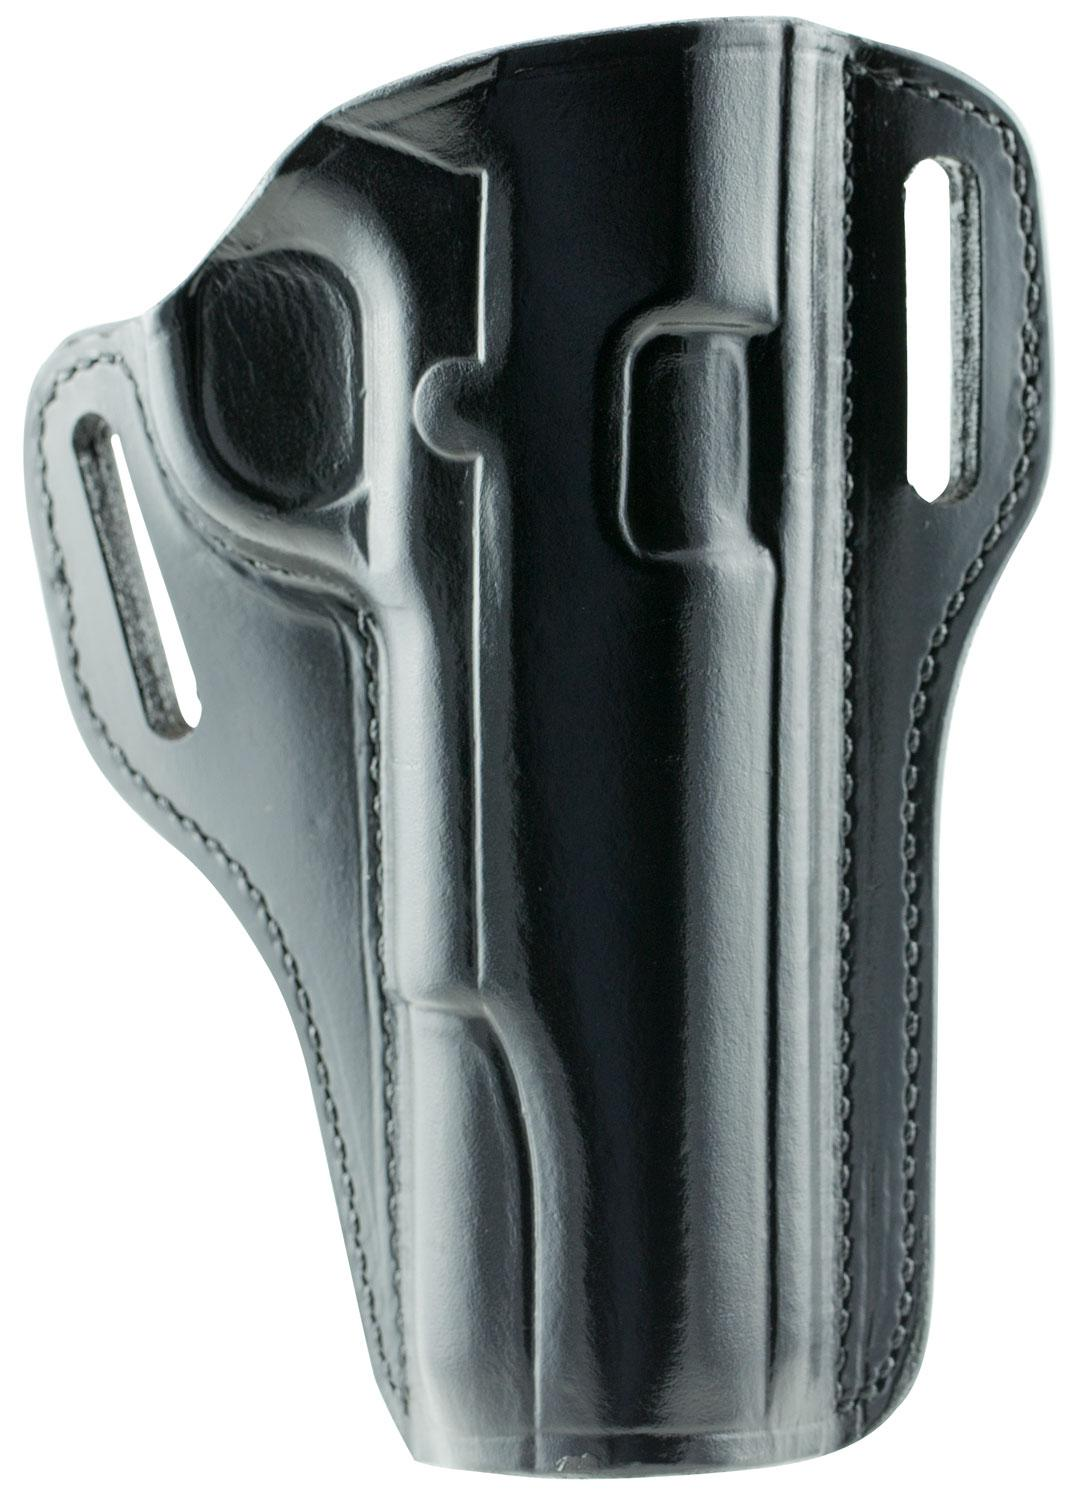 Bianchi 25018 Remedy Colt Government 1911 Leather Black